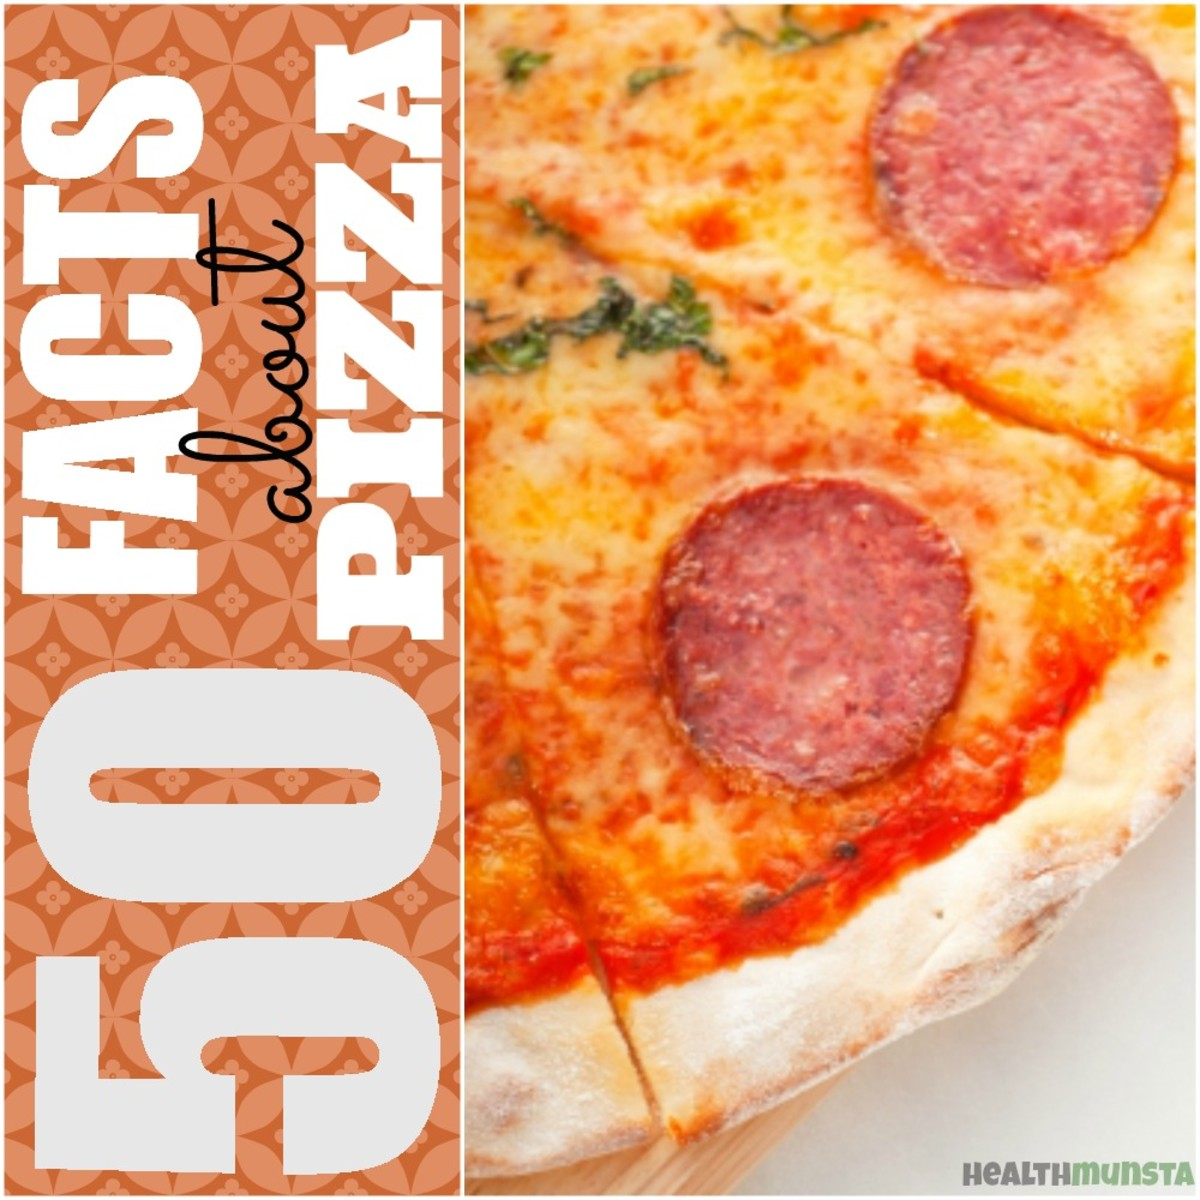 50 Pizza Facts | Fun Facts about Pizza & Pizza Health Facts to Know